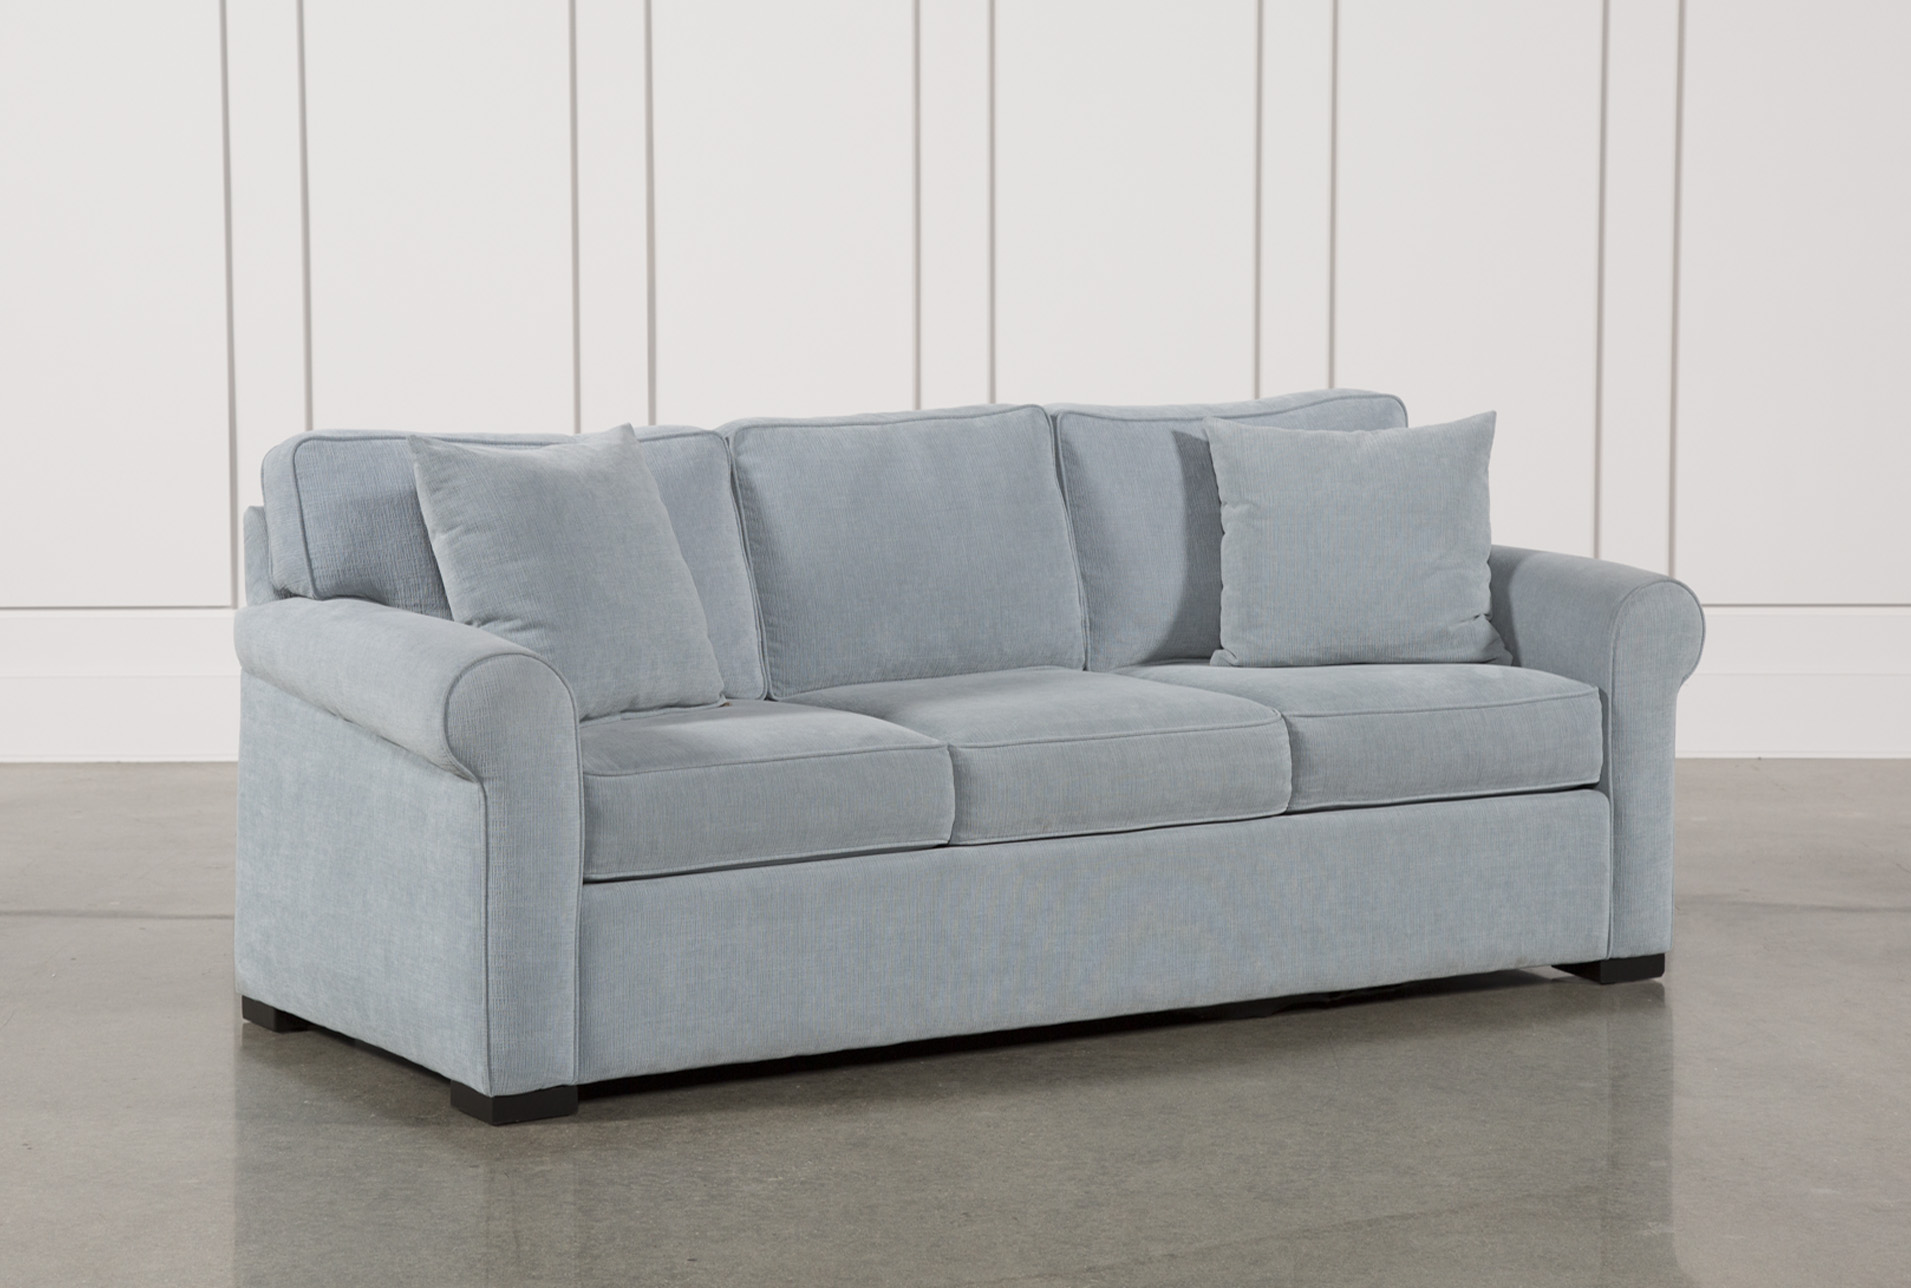 willow and hall sofa reviews wooden cushions in chennai slipcover only for modern slipcovered